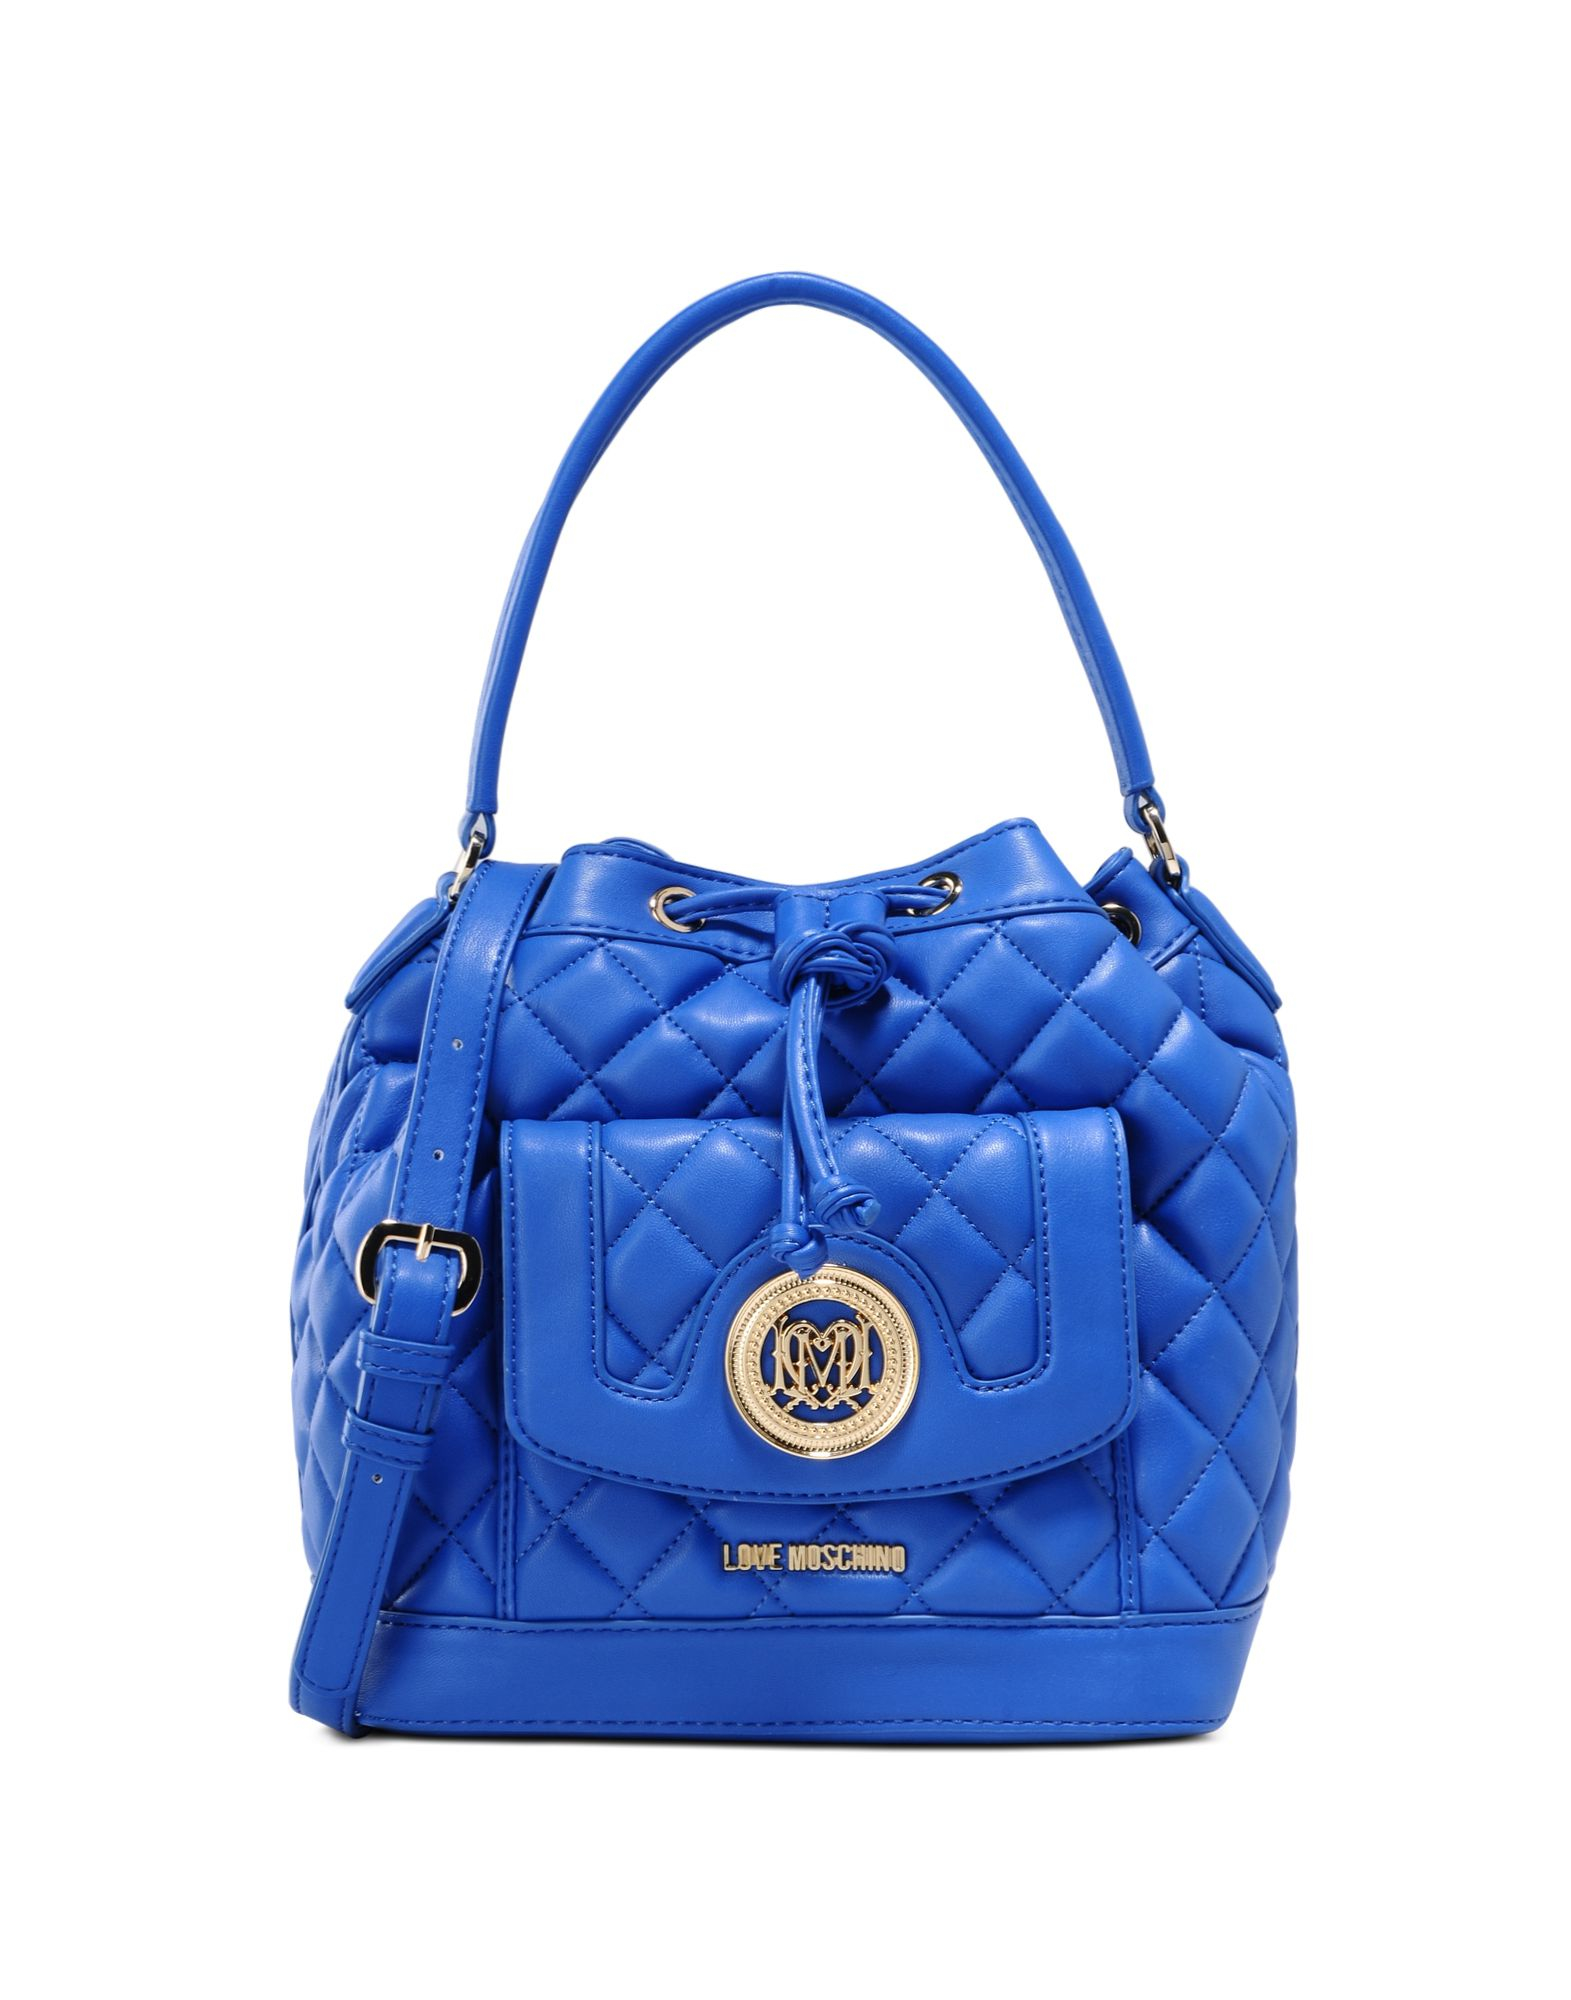 love moschino handbag in blue lyst. Black Bedroom Furniture Sets. Home Design Ideas